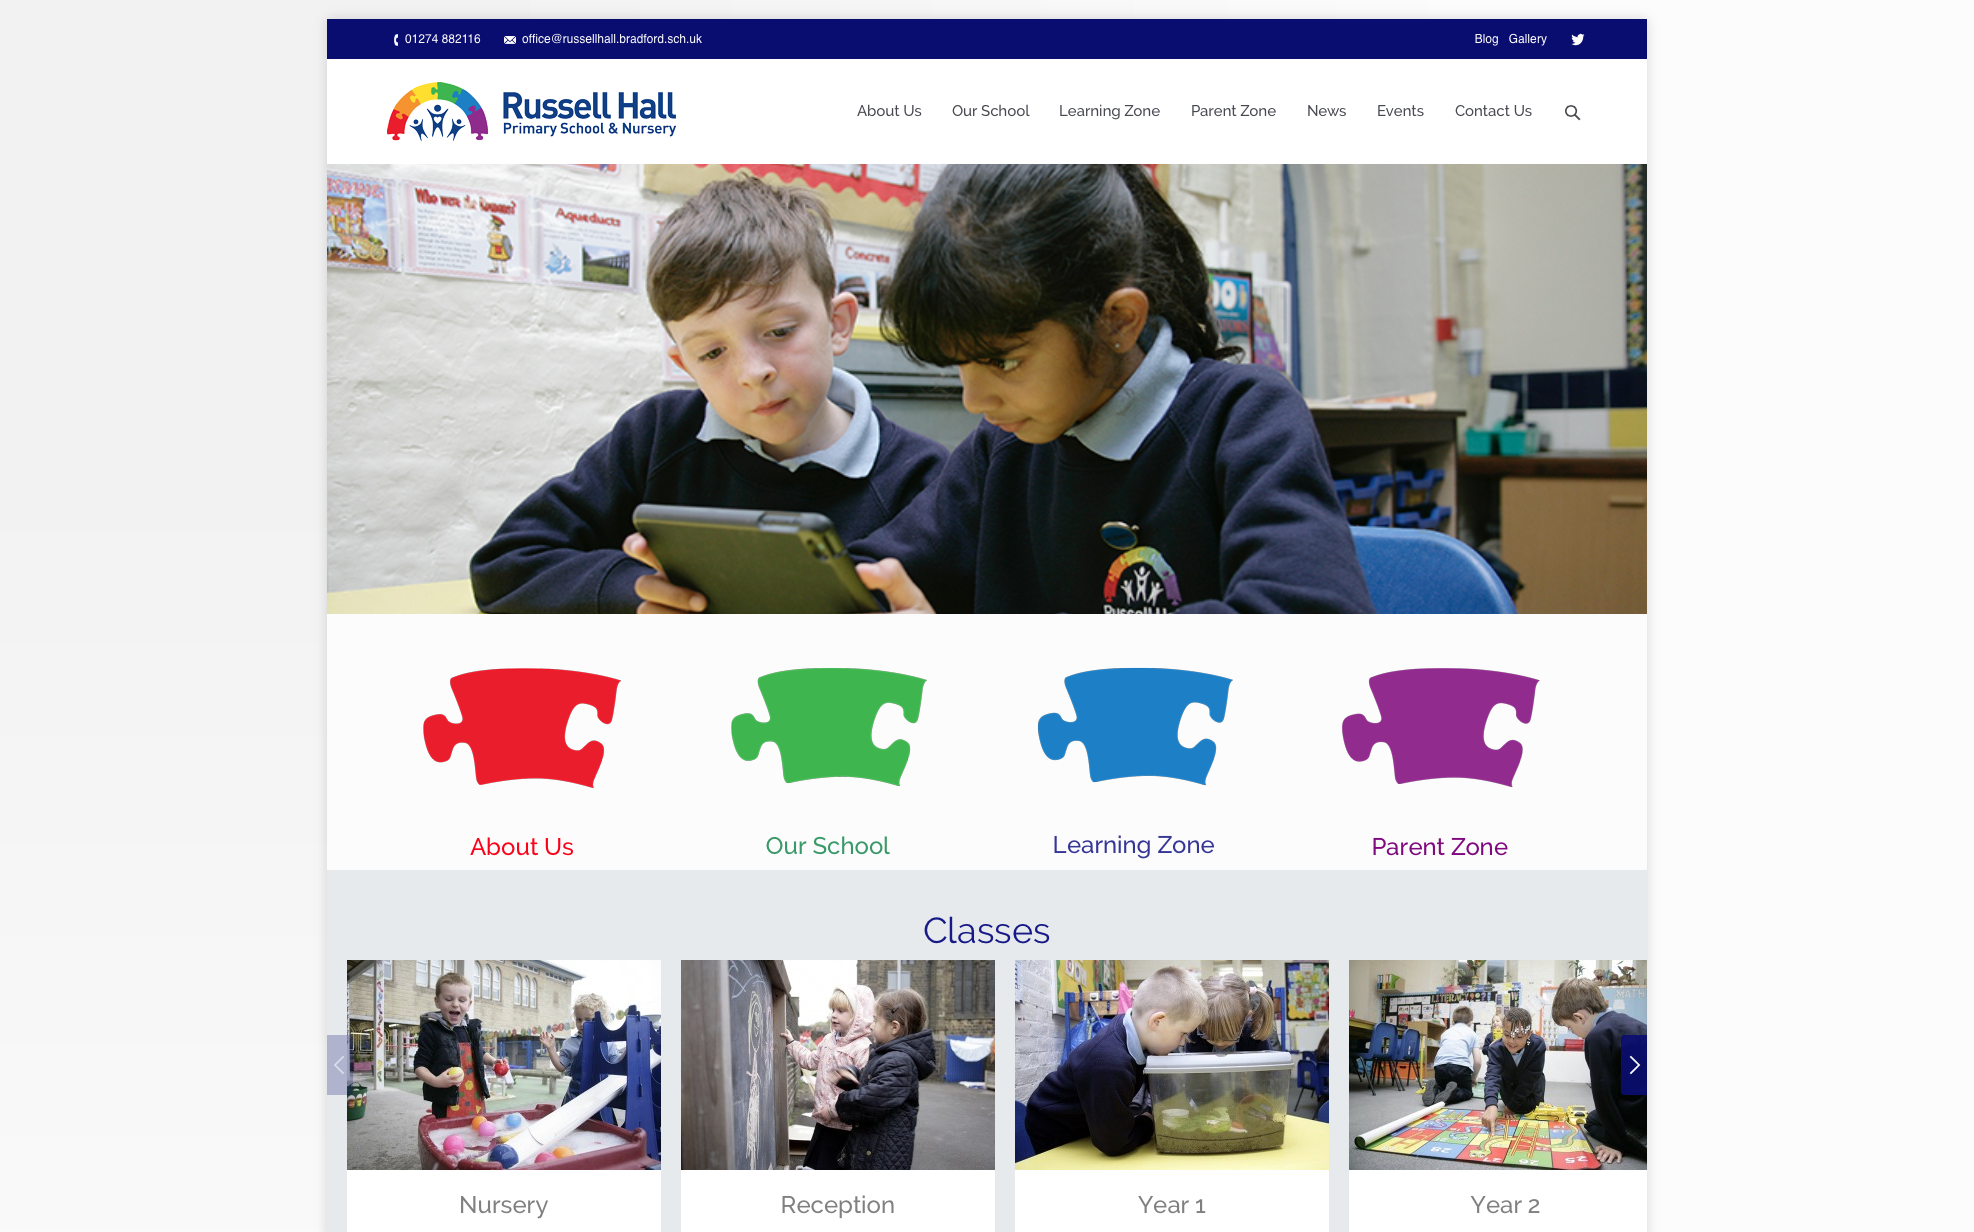 Why A Website Plays A Key Role In Marketing A School